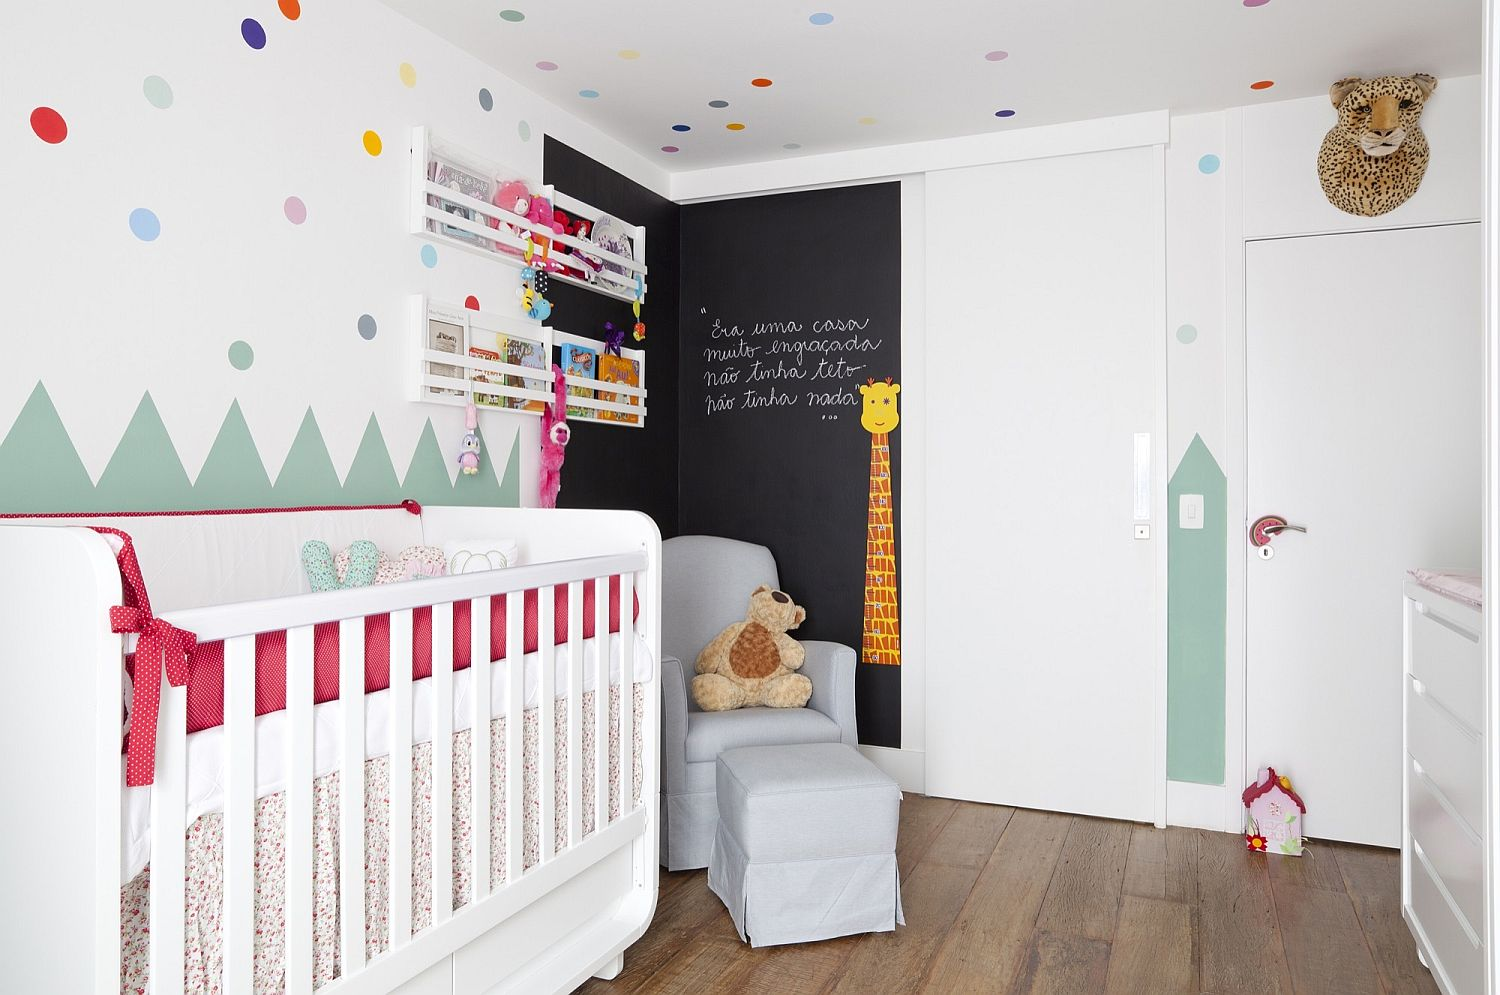 Chalkboard wall for the modern nursery with colorful wall decals